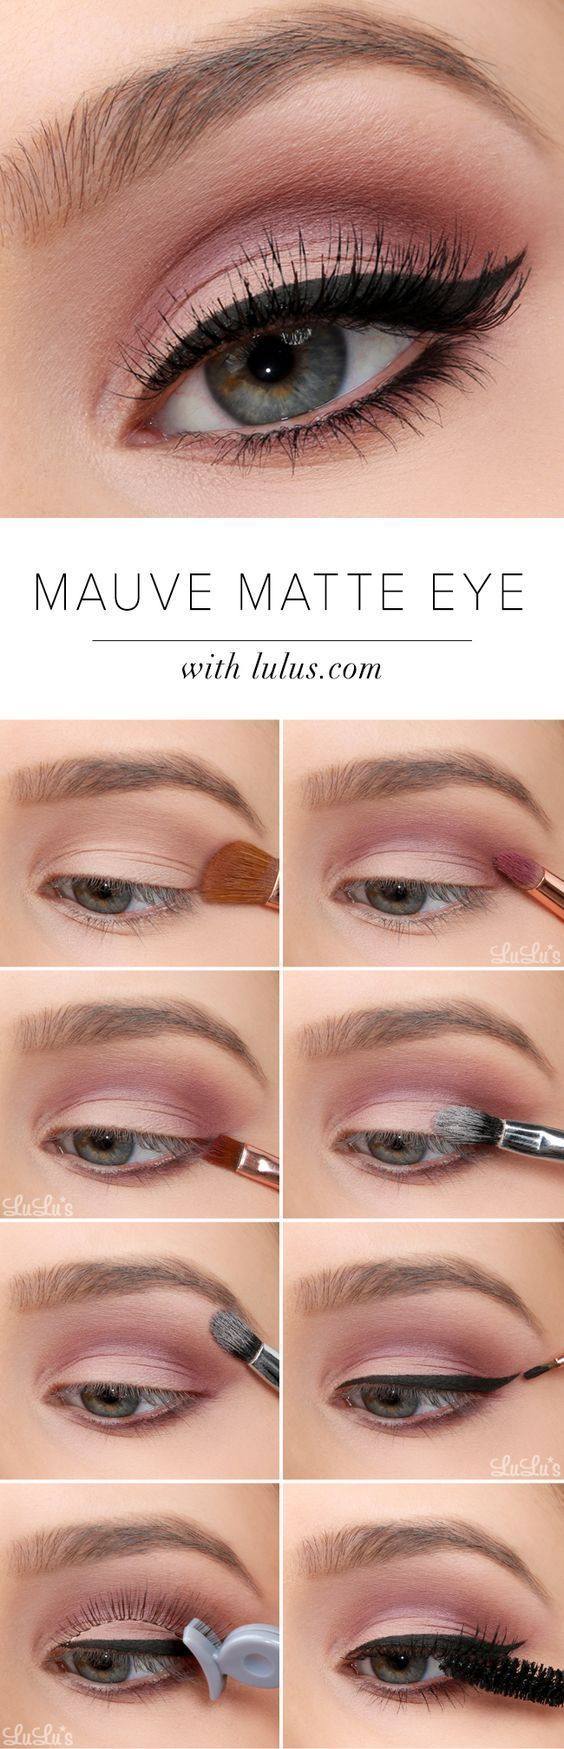 5 reasons why cleaning your makeup brushes is important easy eye easy eye makeup step by step tutorial baditri Image collections